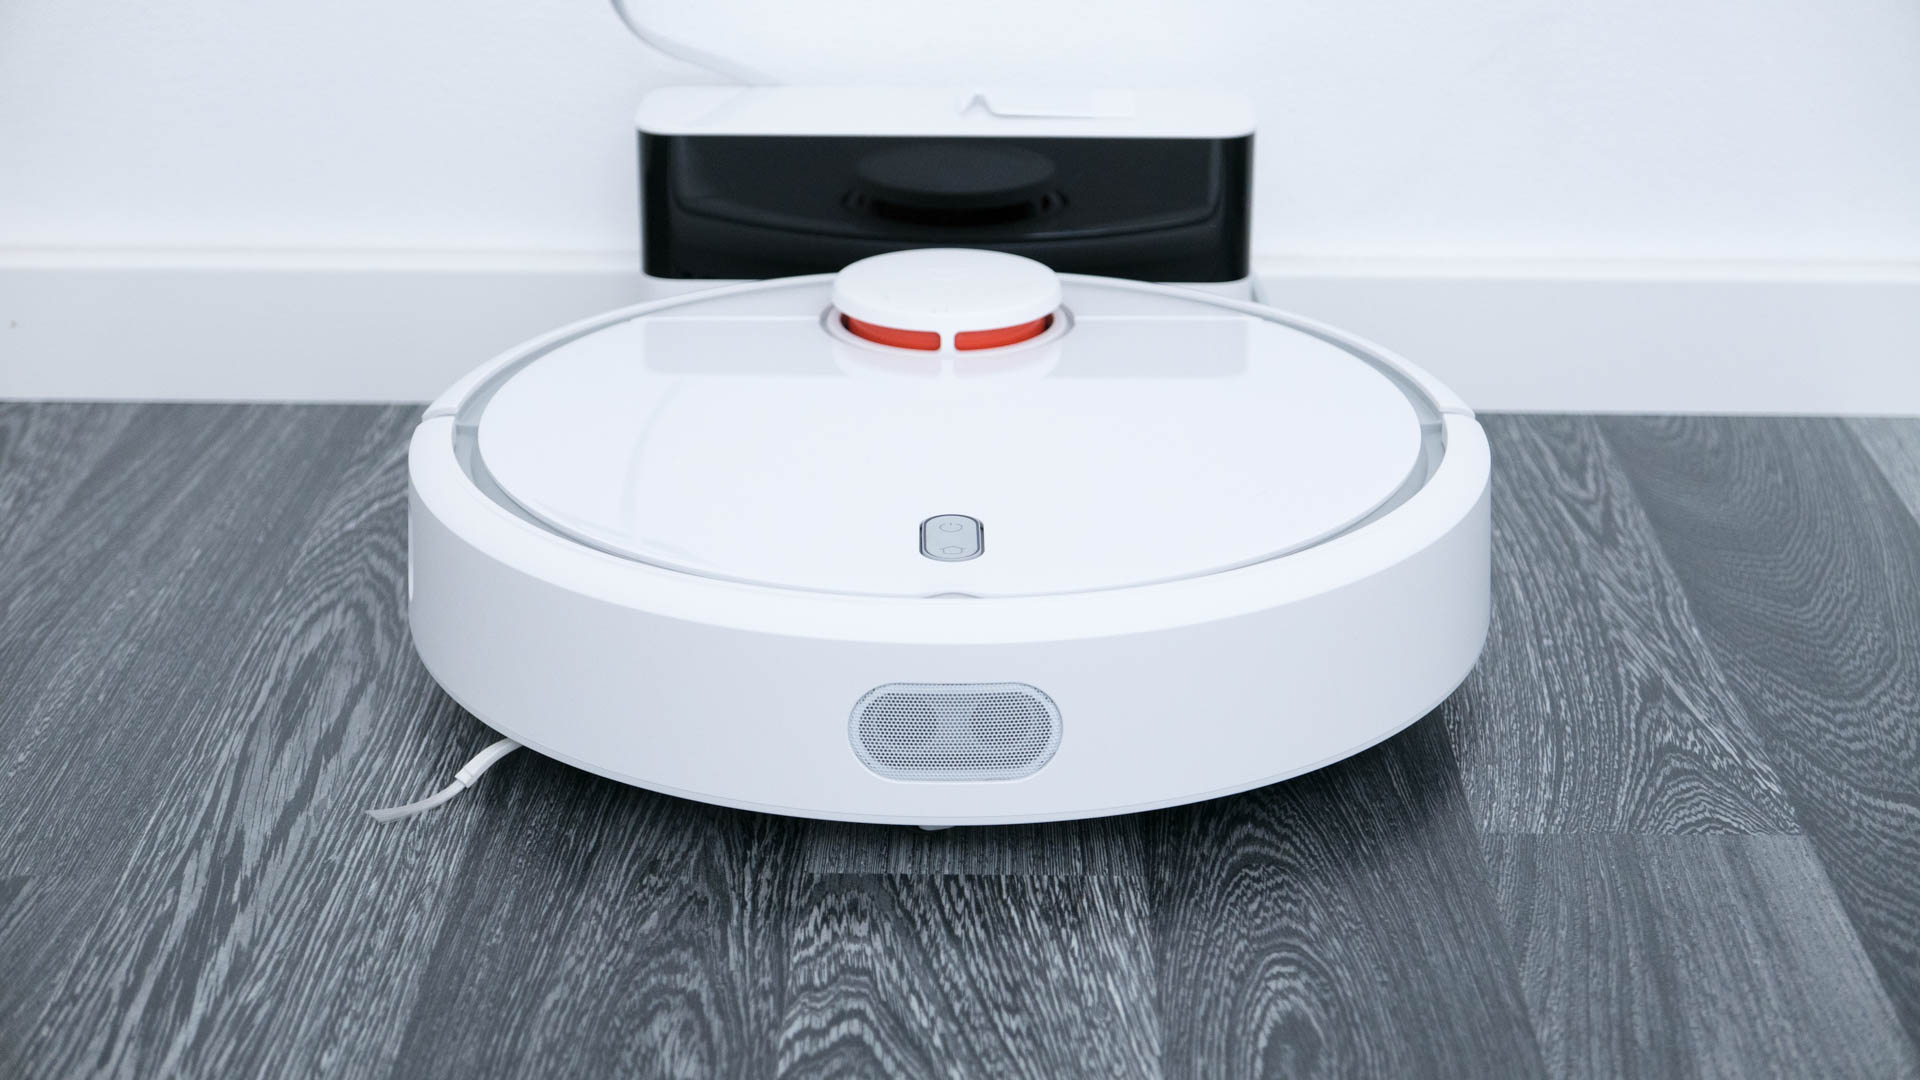 xiaomi mi staubsauger roboter deals smarthomeassistent. Black Bedroom Furniture Sets. Home Design Ideas